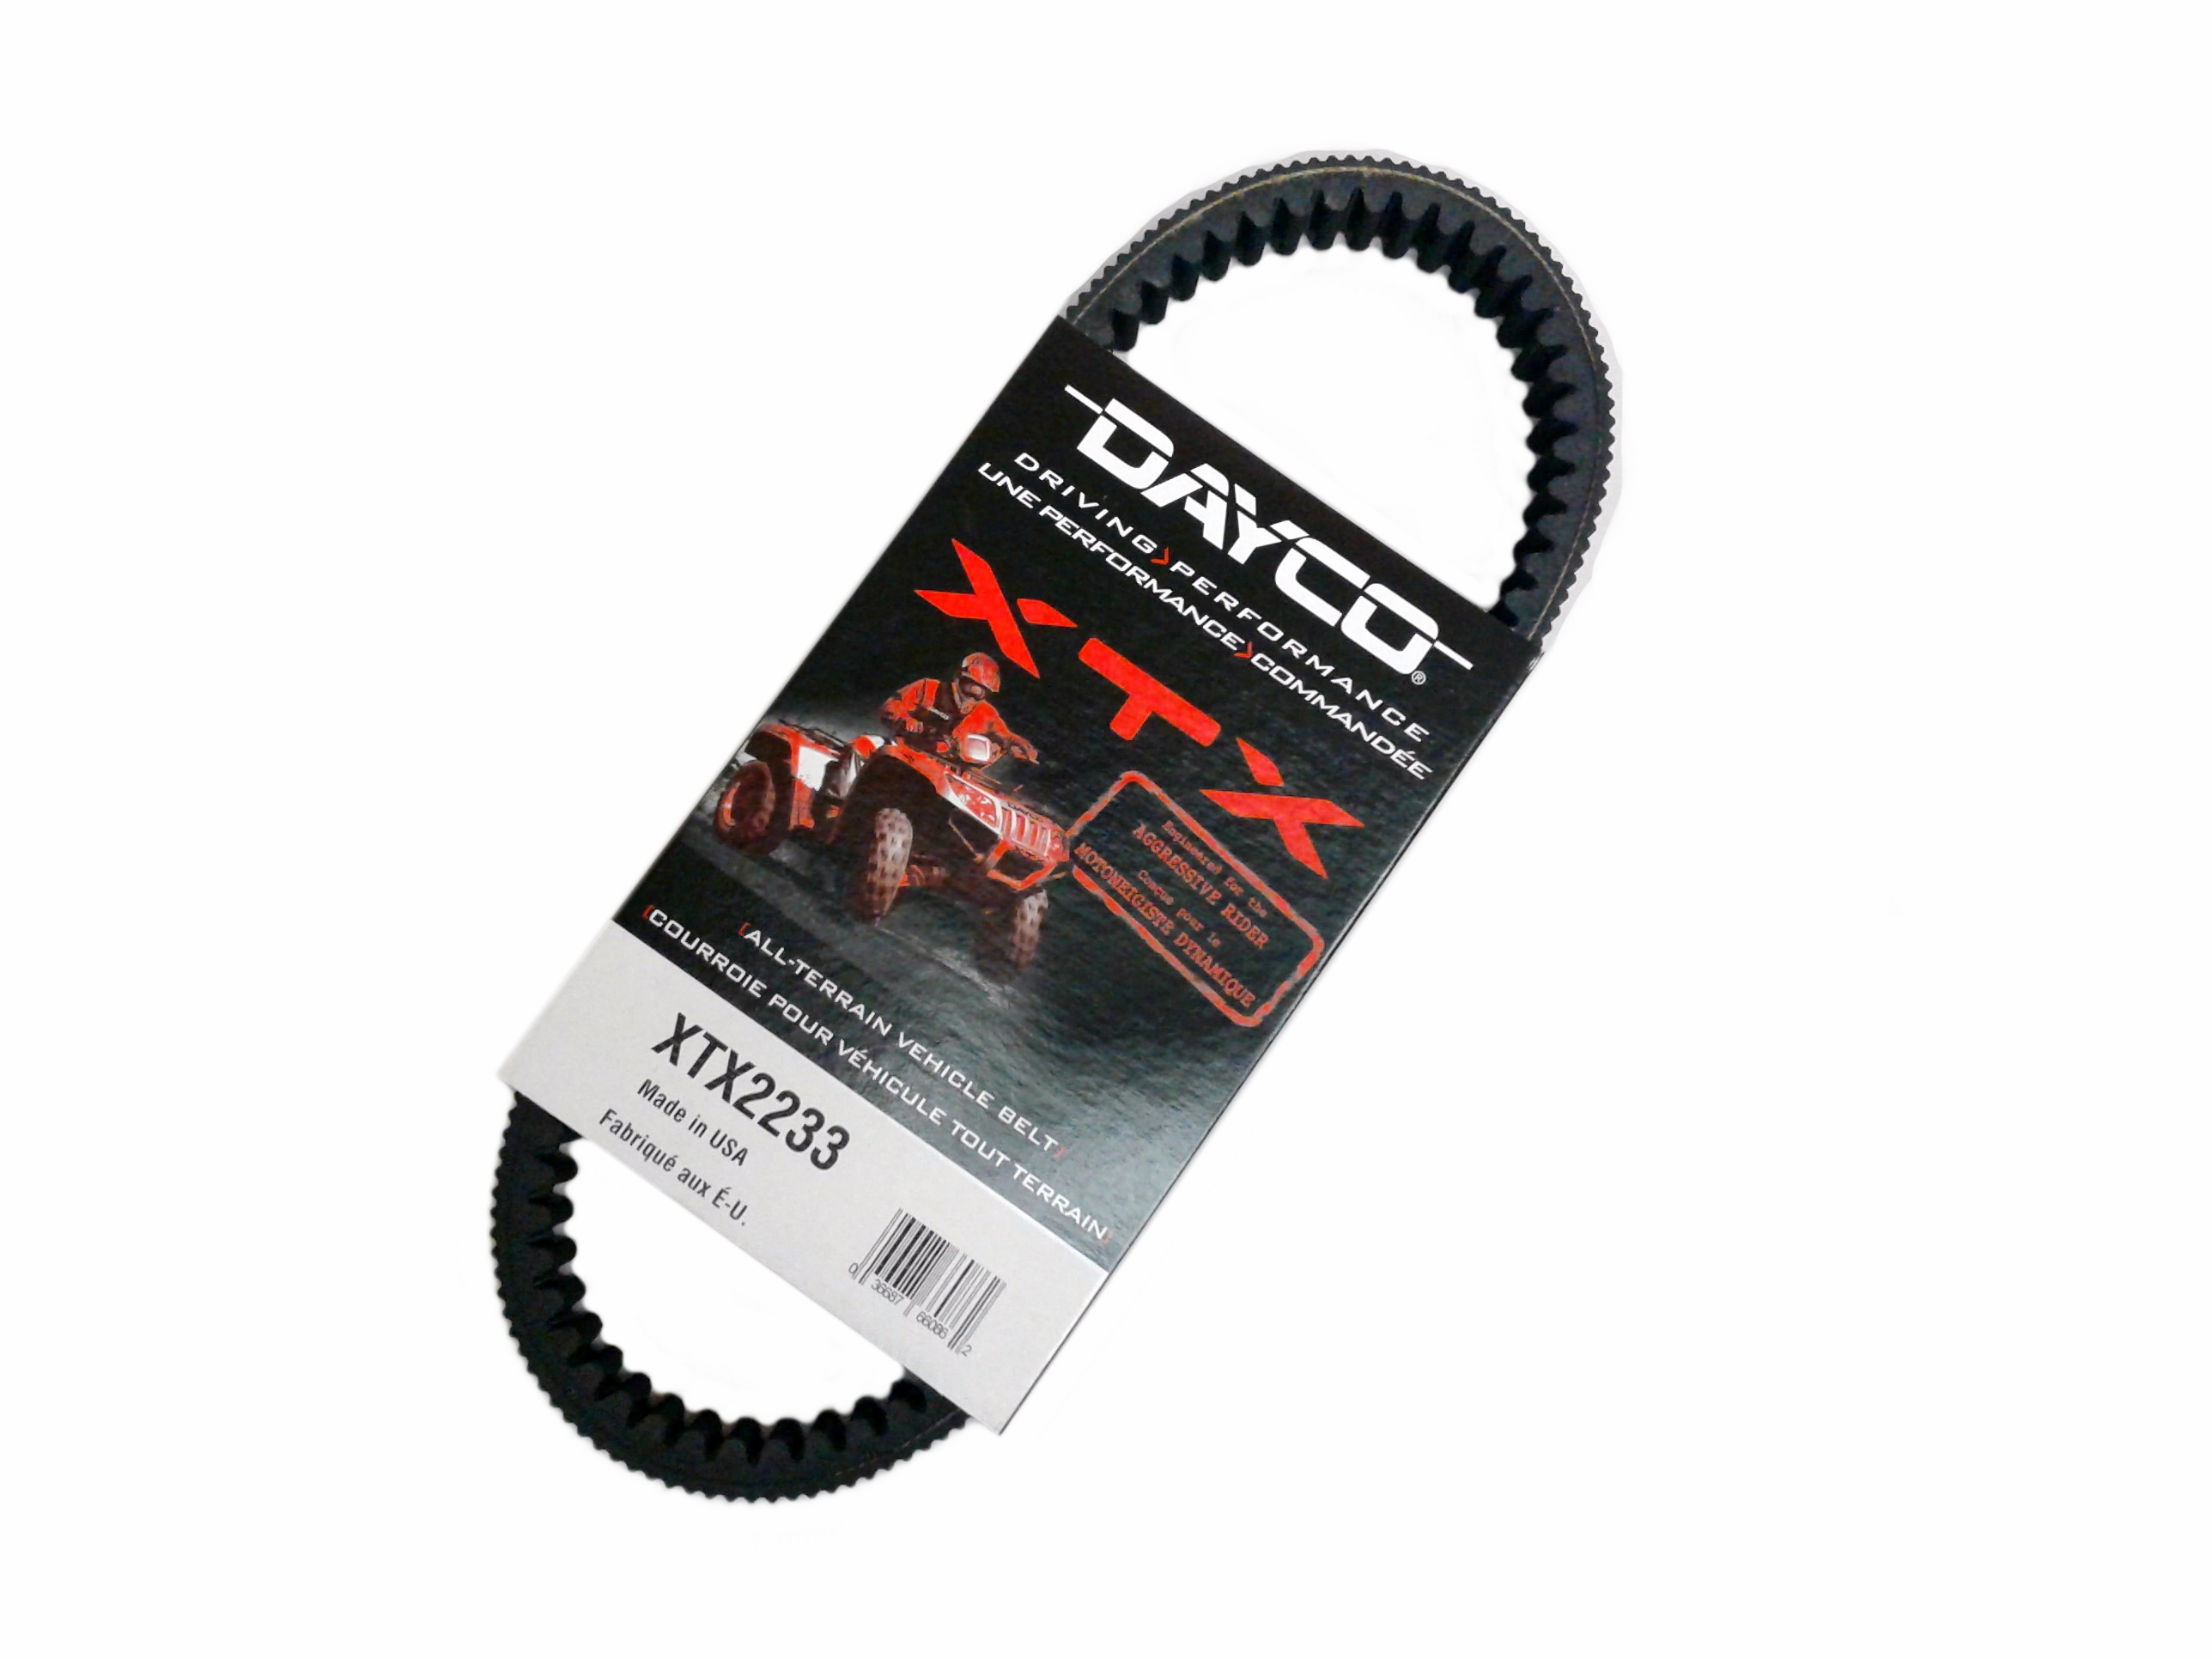 Dayco XTX Drive Belt Yamaha ATV UTV Replaces 3B4-17641-00-00 5B4-17641-00-00